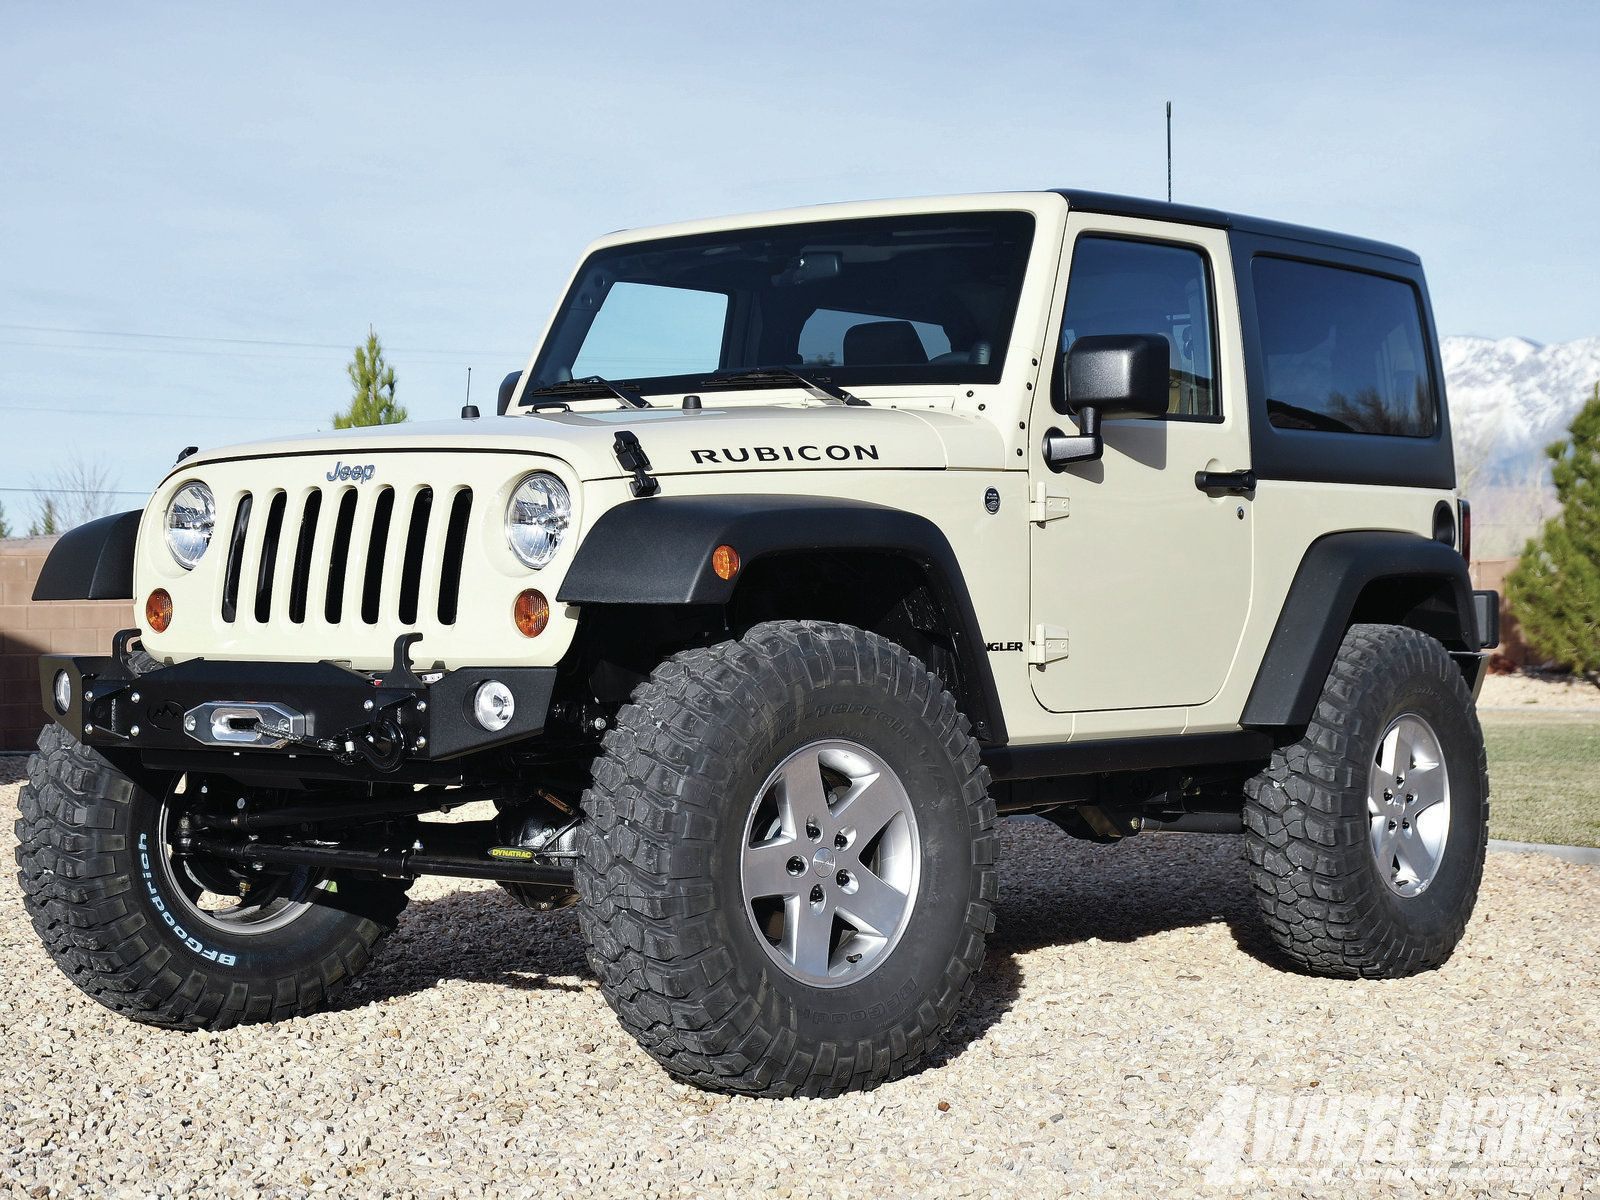 2 Door Jeep Rubicon Google Search Jeep Wrangler Rubicon Jeep